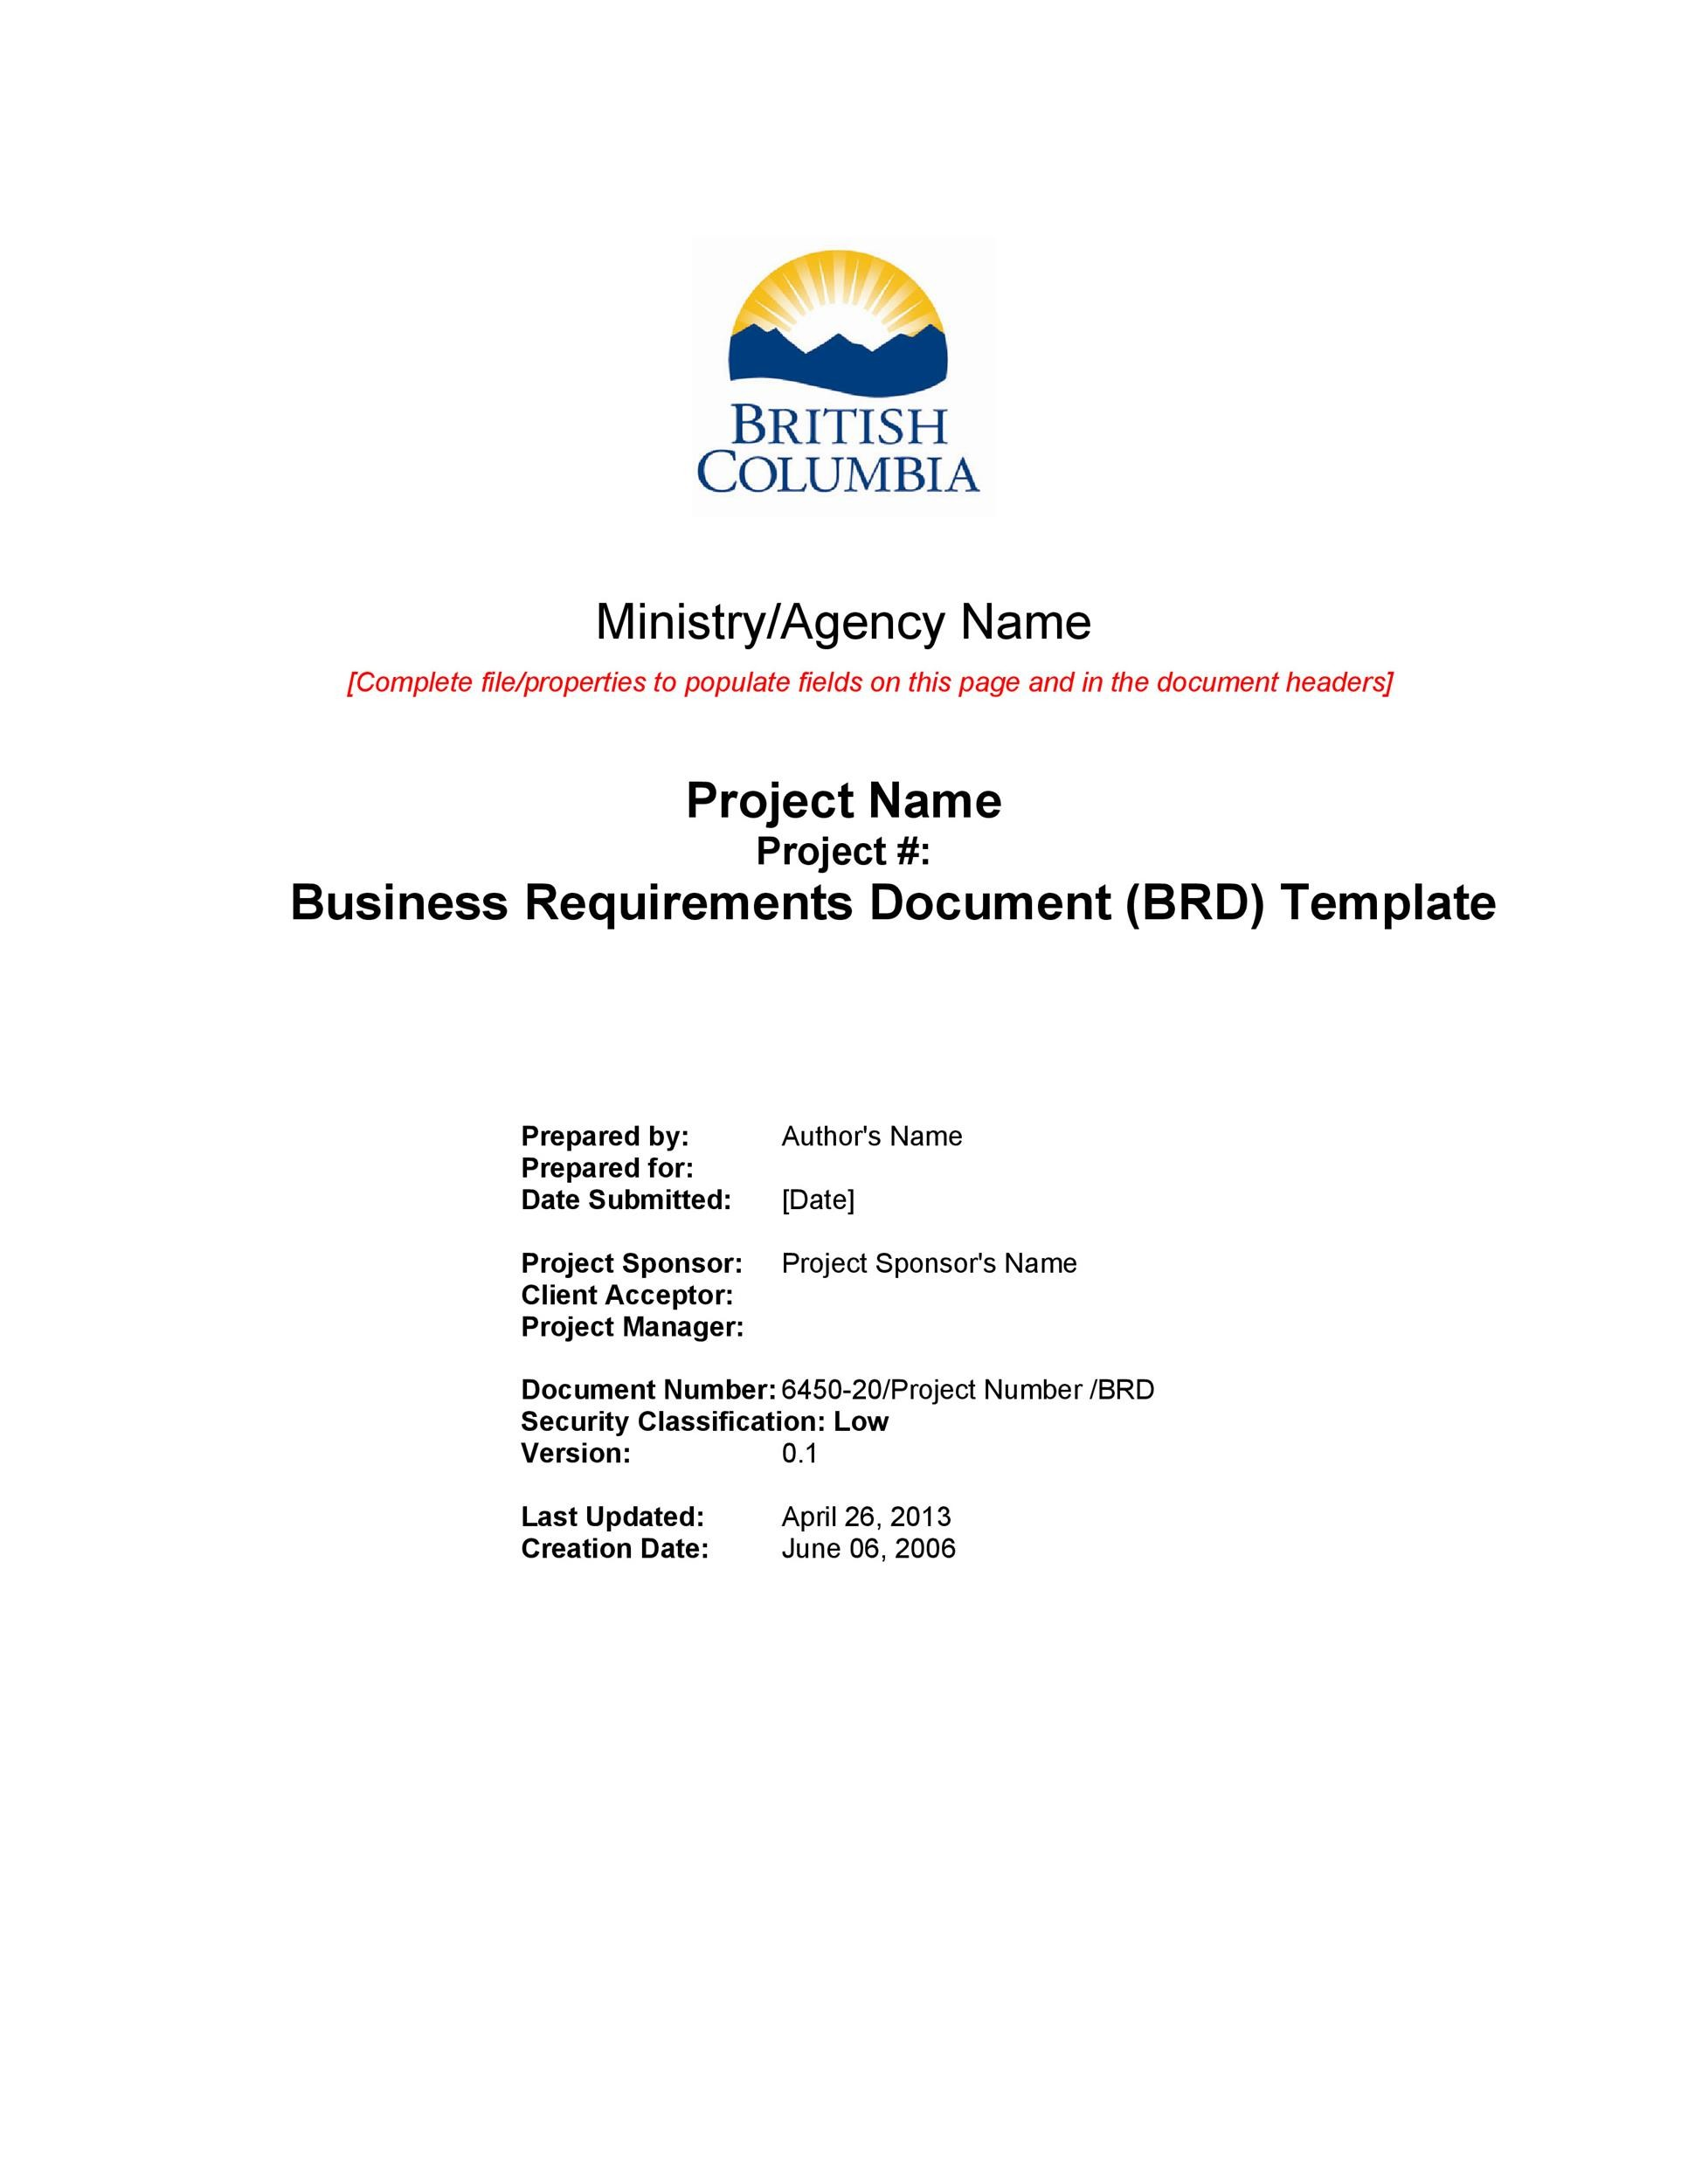 40 simple business requirements document templates template lab free business requirements document template 02 accmission Image collections